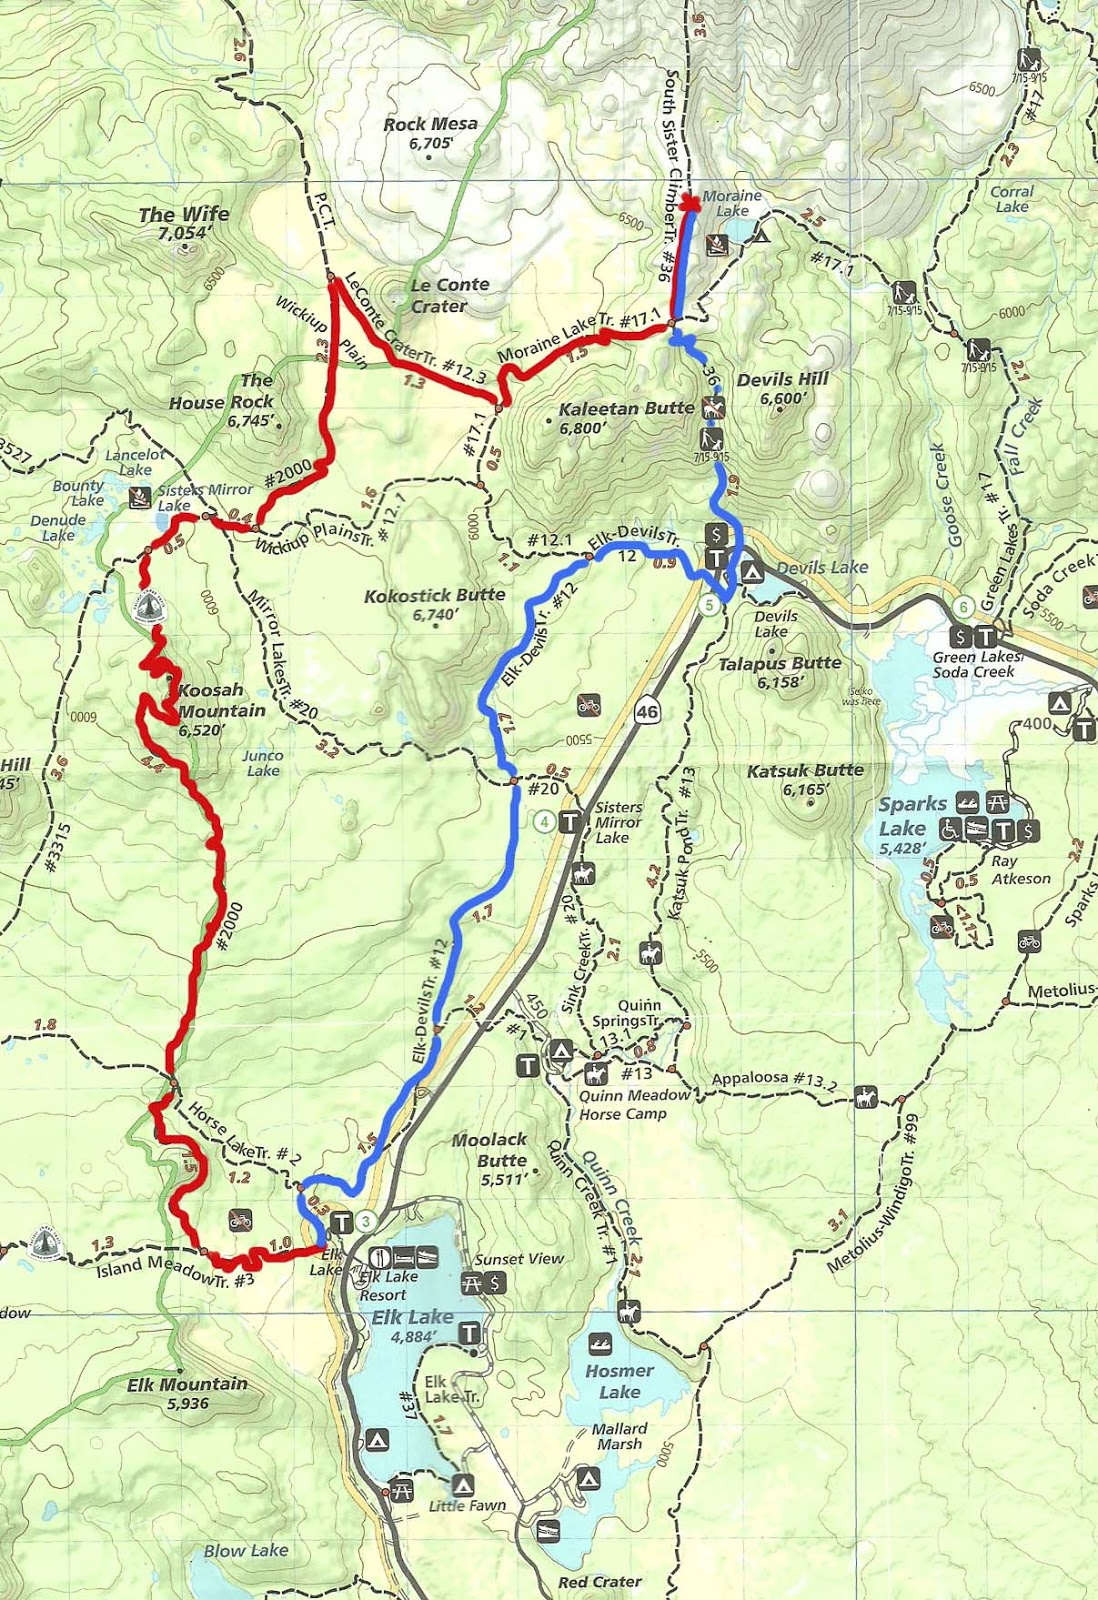 pct trail maps with October 11 12 Elk Lake To South Sister on 2016 04 26 30 together with Hiking Big Bear Lake Trinity Alps moreover John Muir Trail Map likewise 3b135917a8d95a29aa77fd47eba2d230 as well 2.